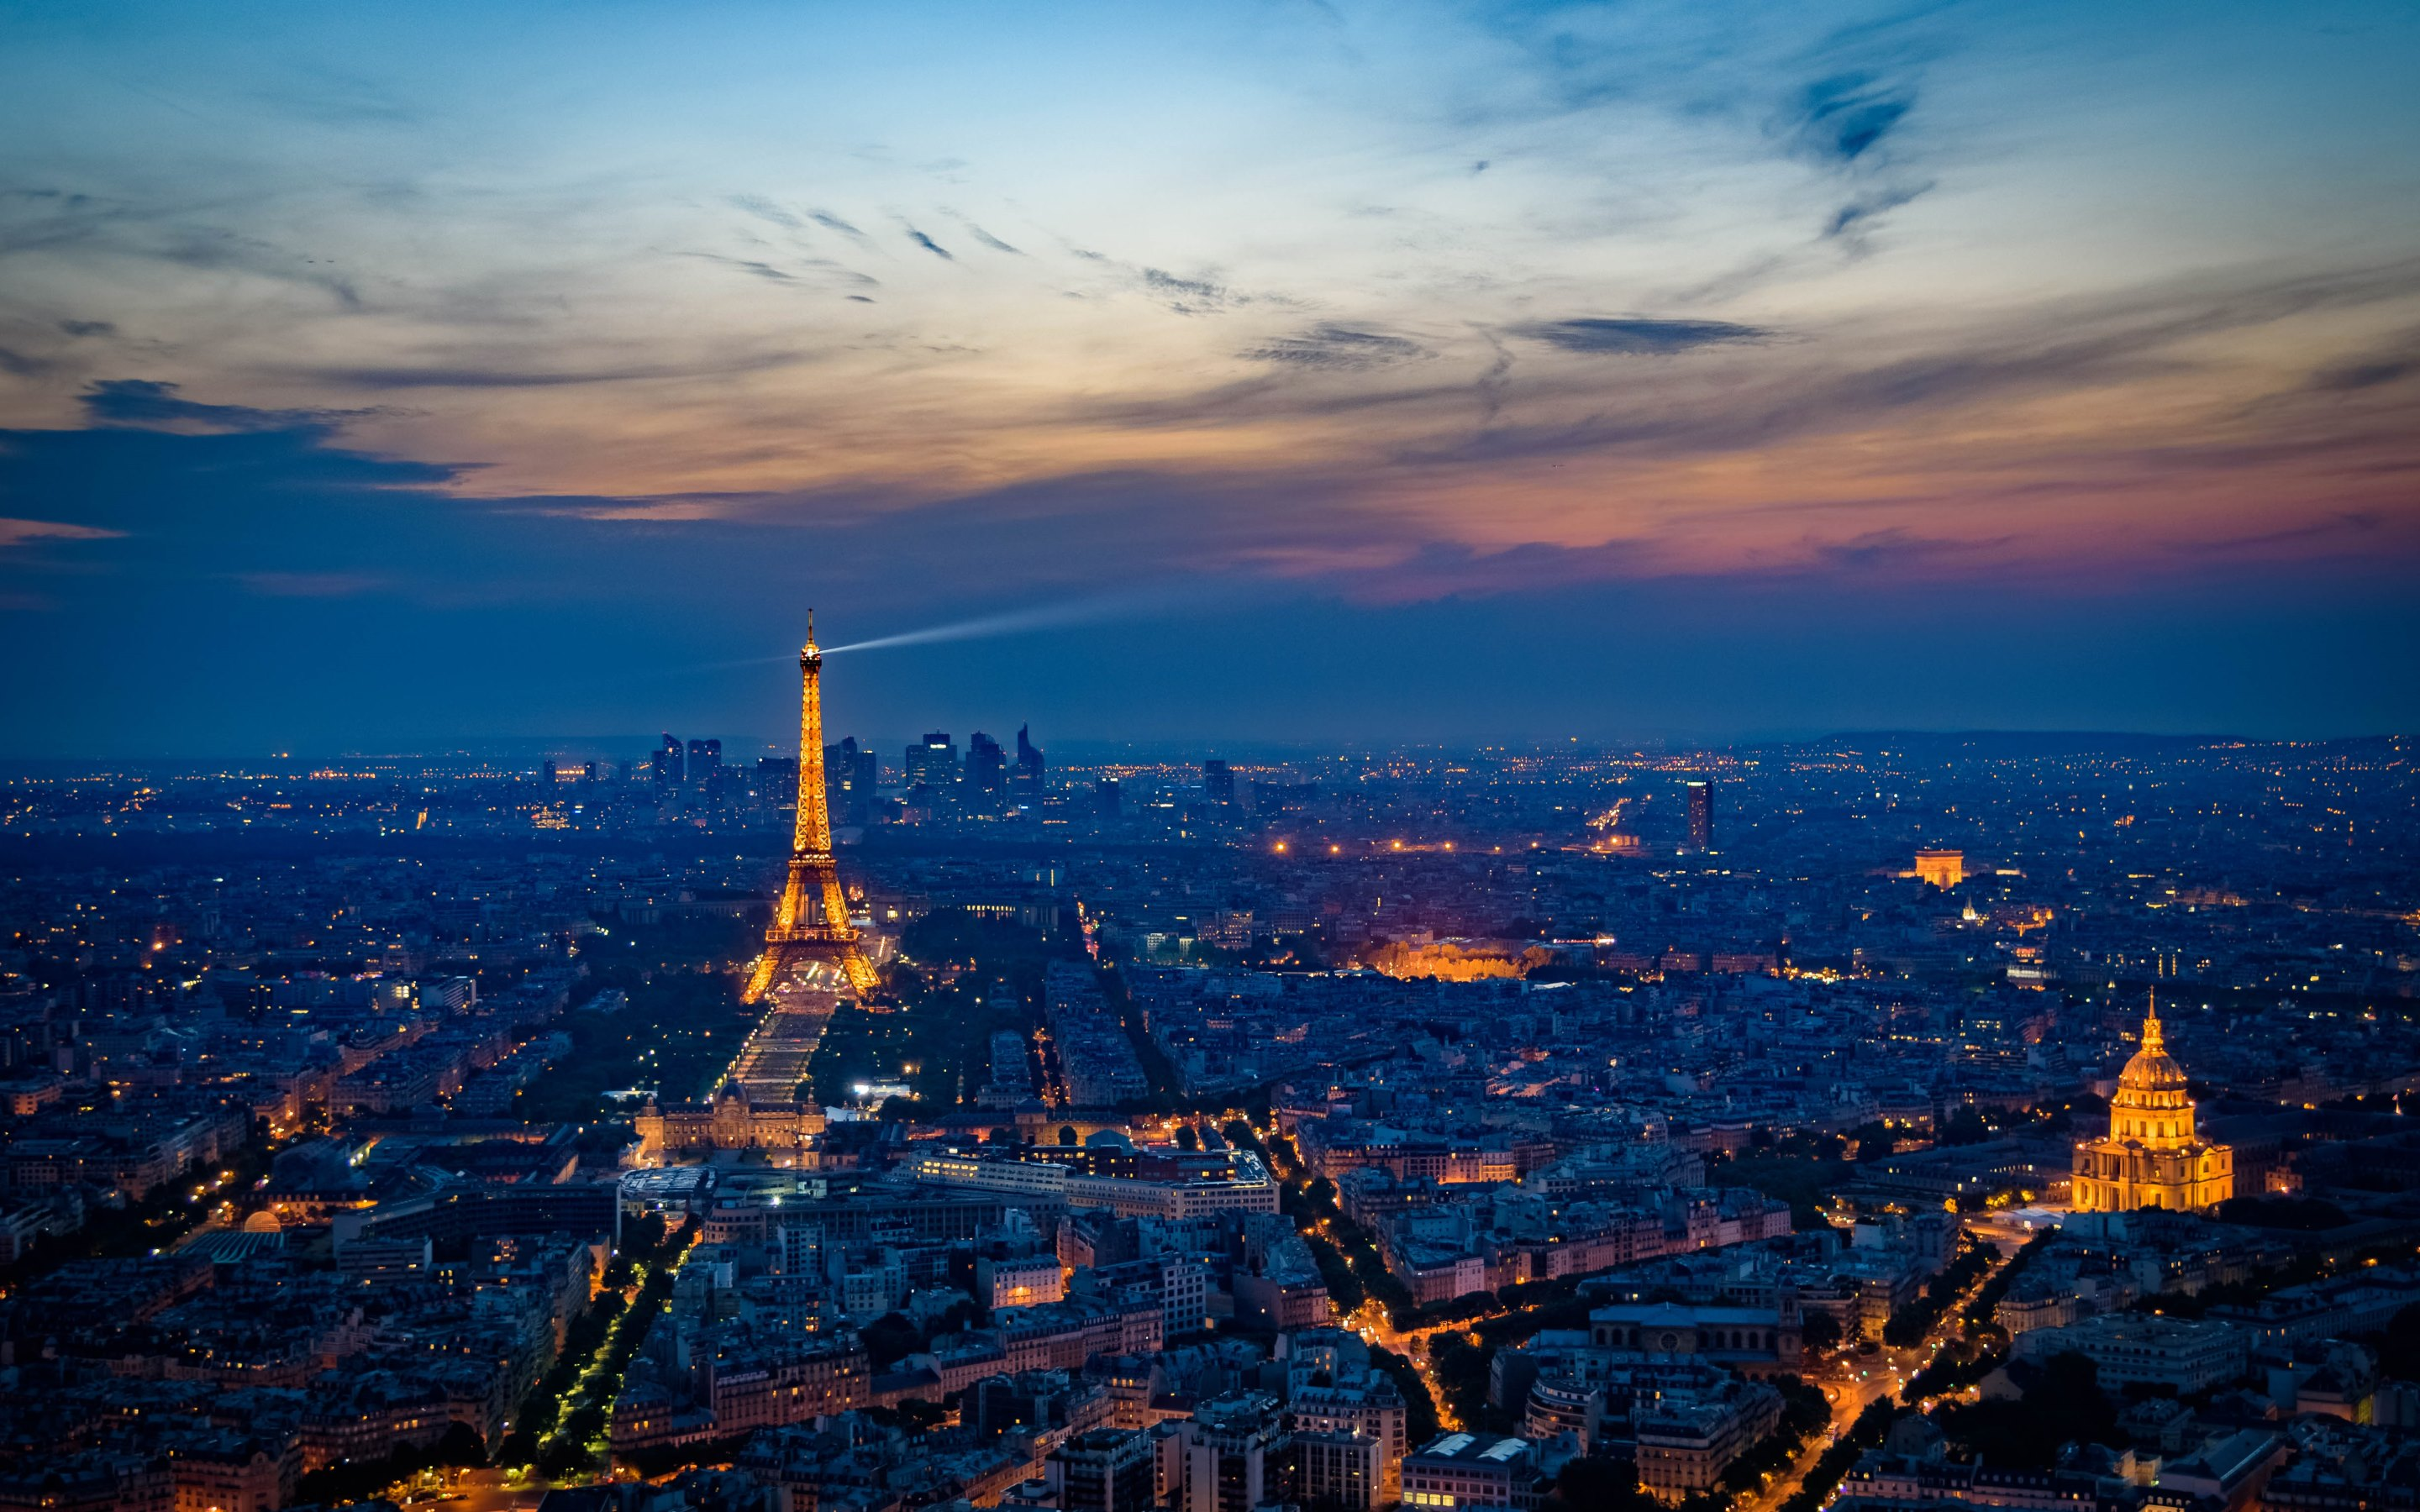 the paris at sunset hd wallpapers 4k